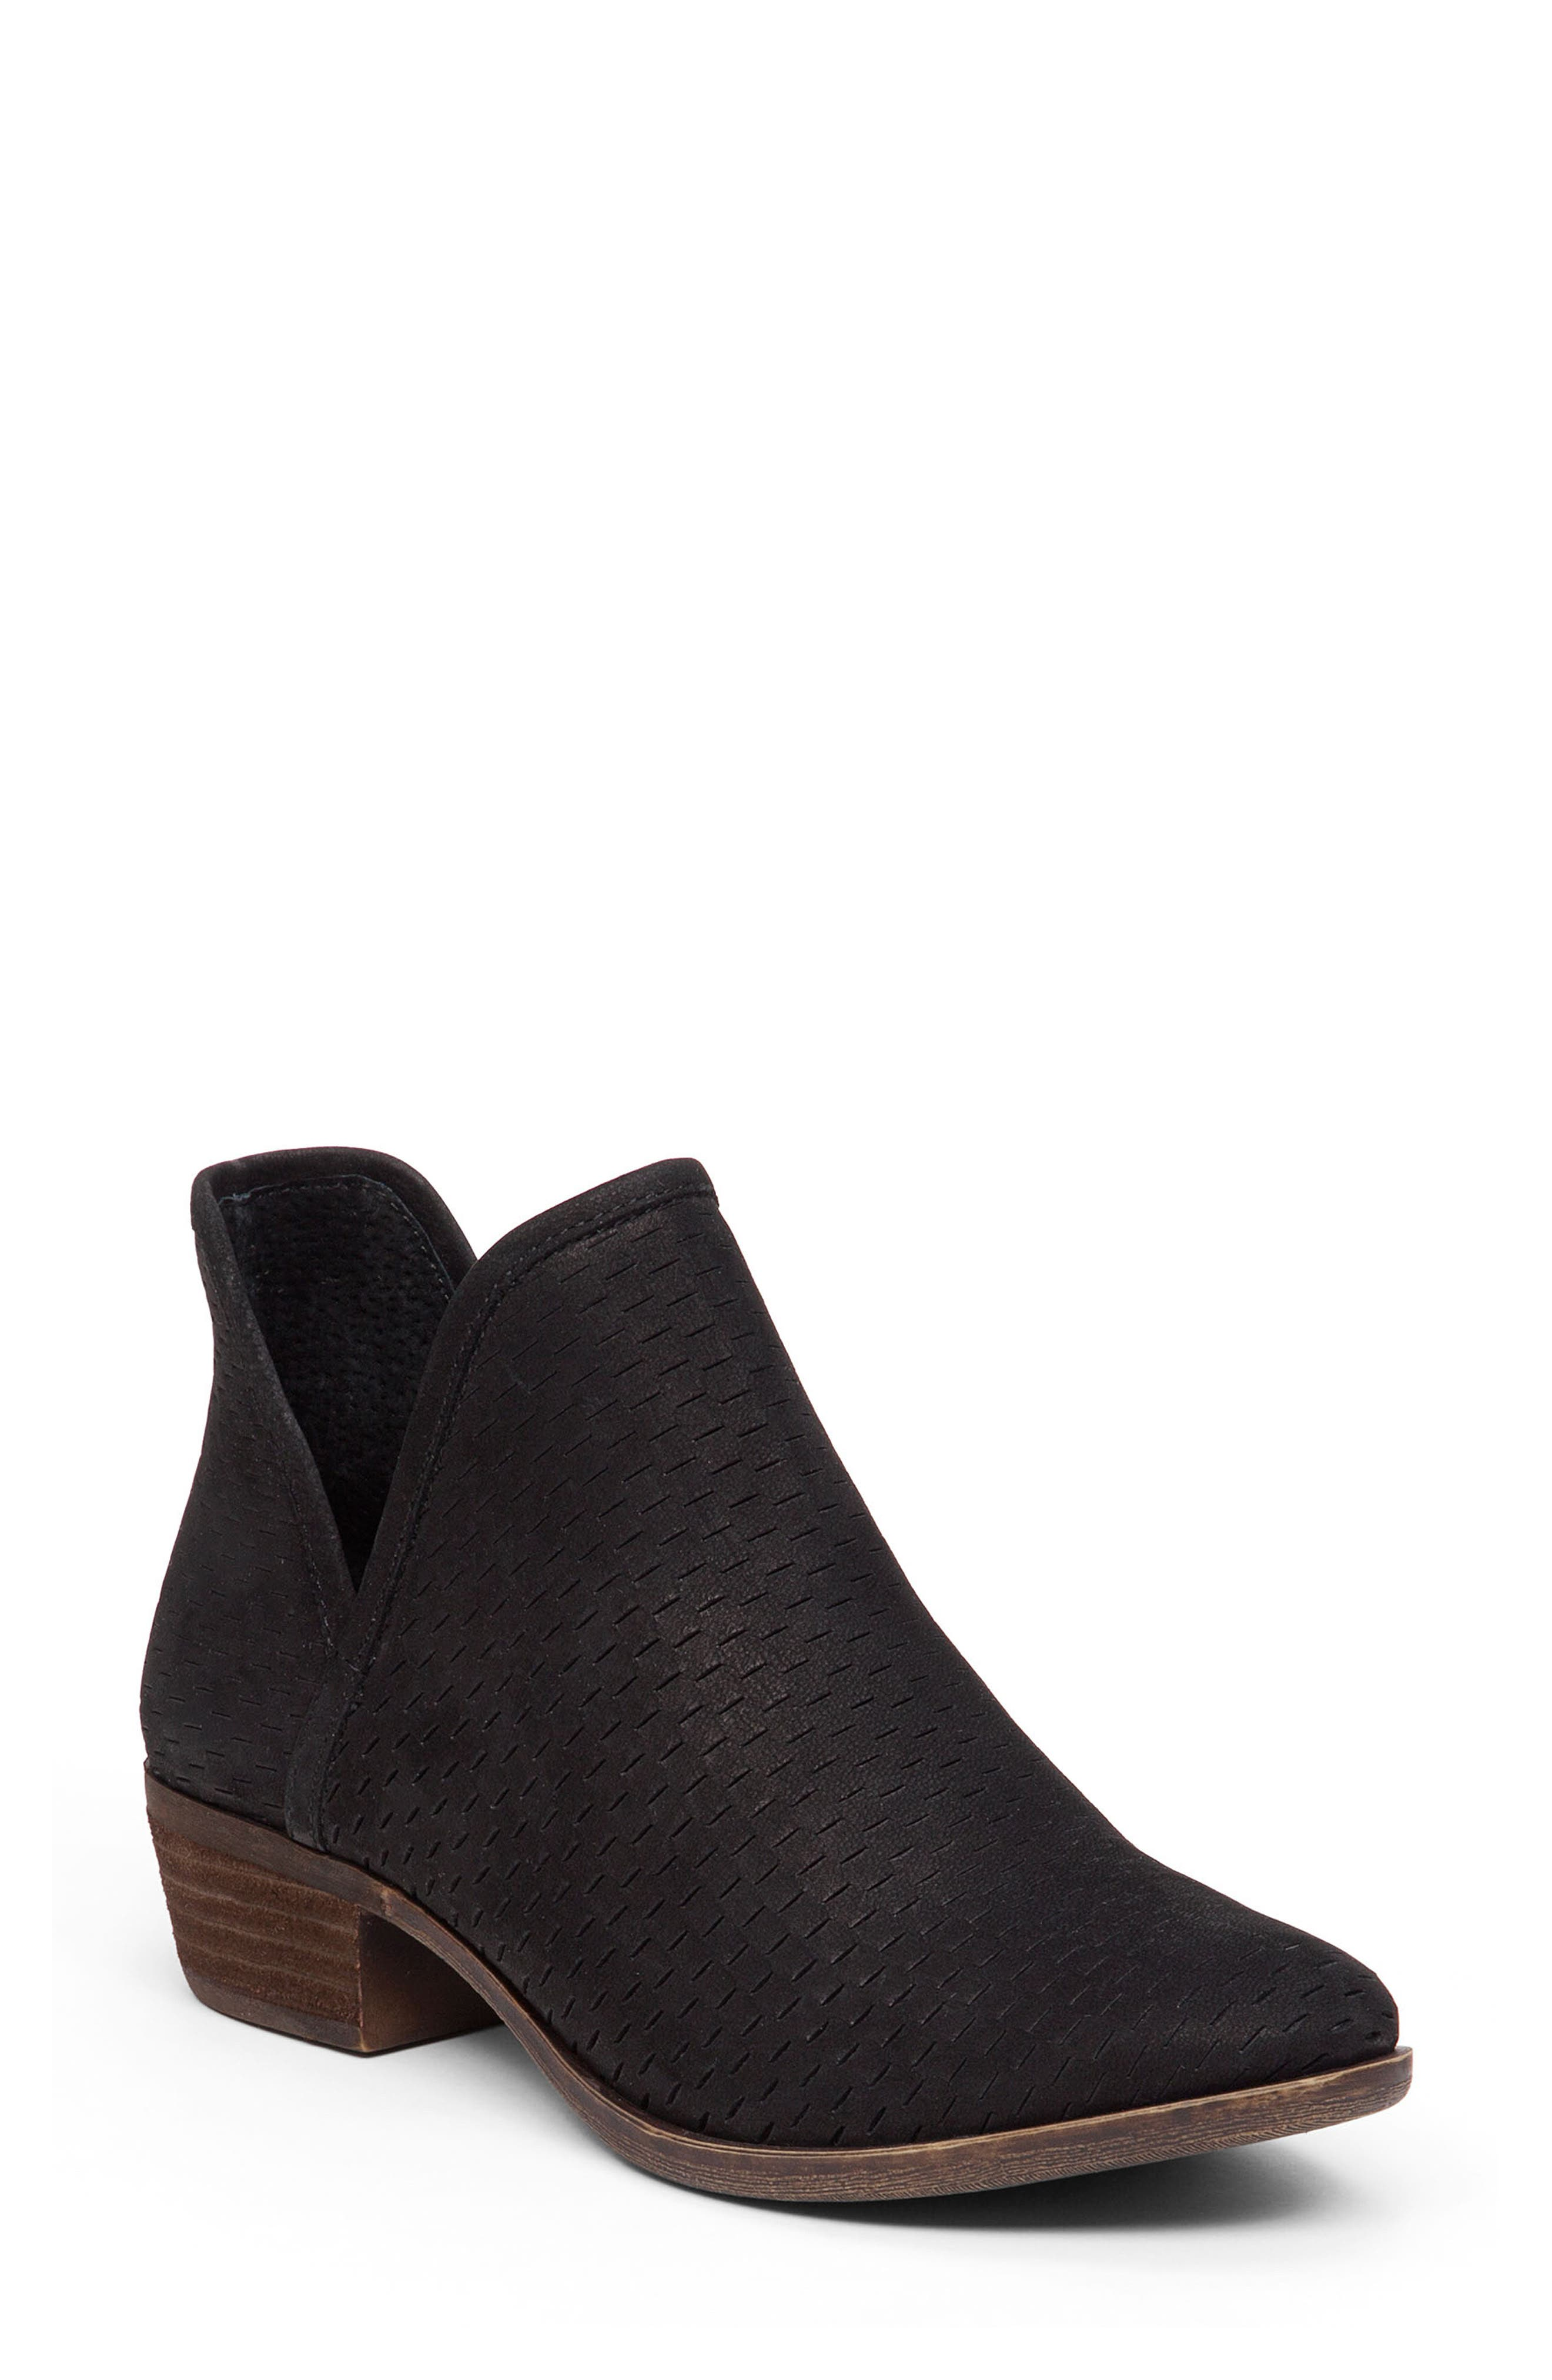 Lucky Brand Baley Bootie, Black